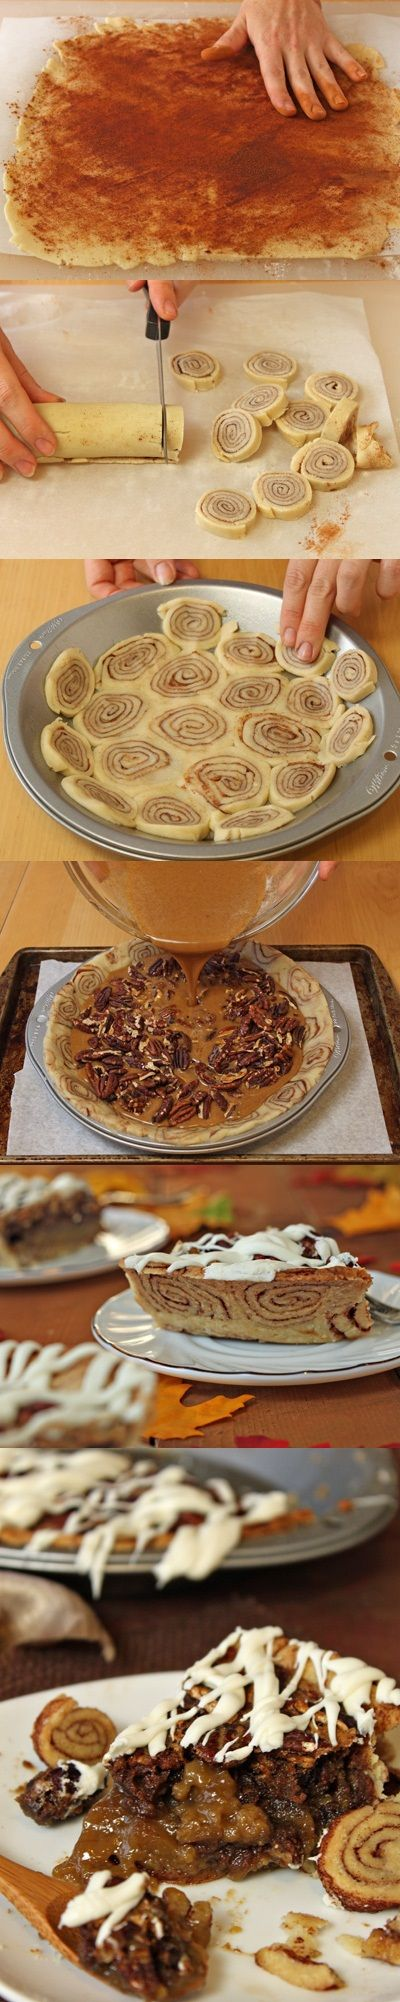 Cinnamon Bun Pecan Pie Recipe  Why is this a thing?? Are pecan pie and cinnamon rolls not fattening enough on their own?? It does look amazing though...